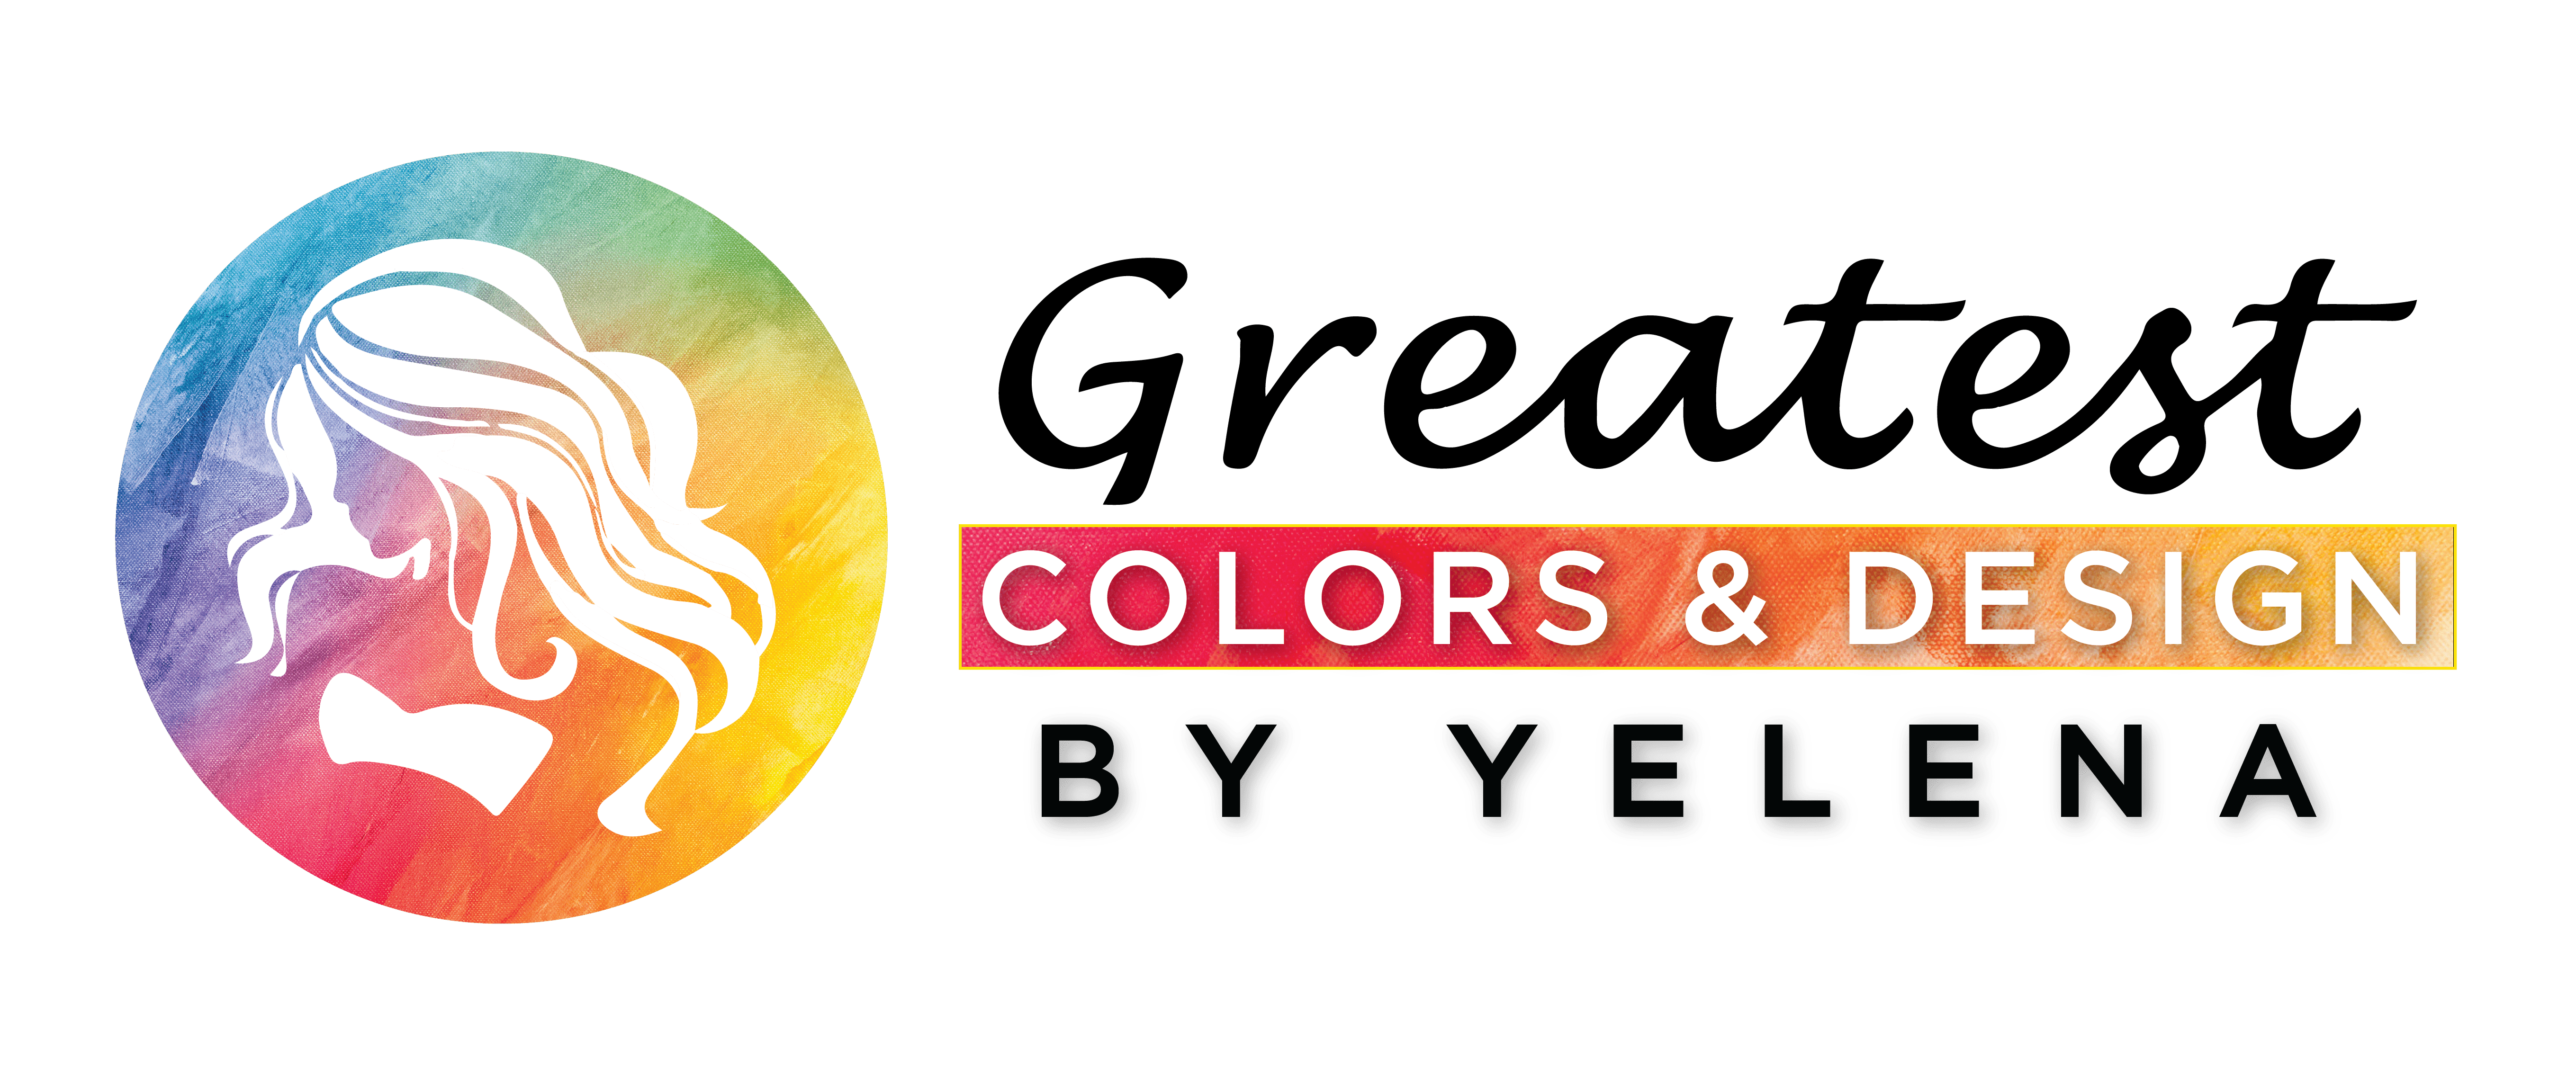 Greatest Colors and Design